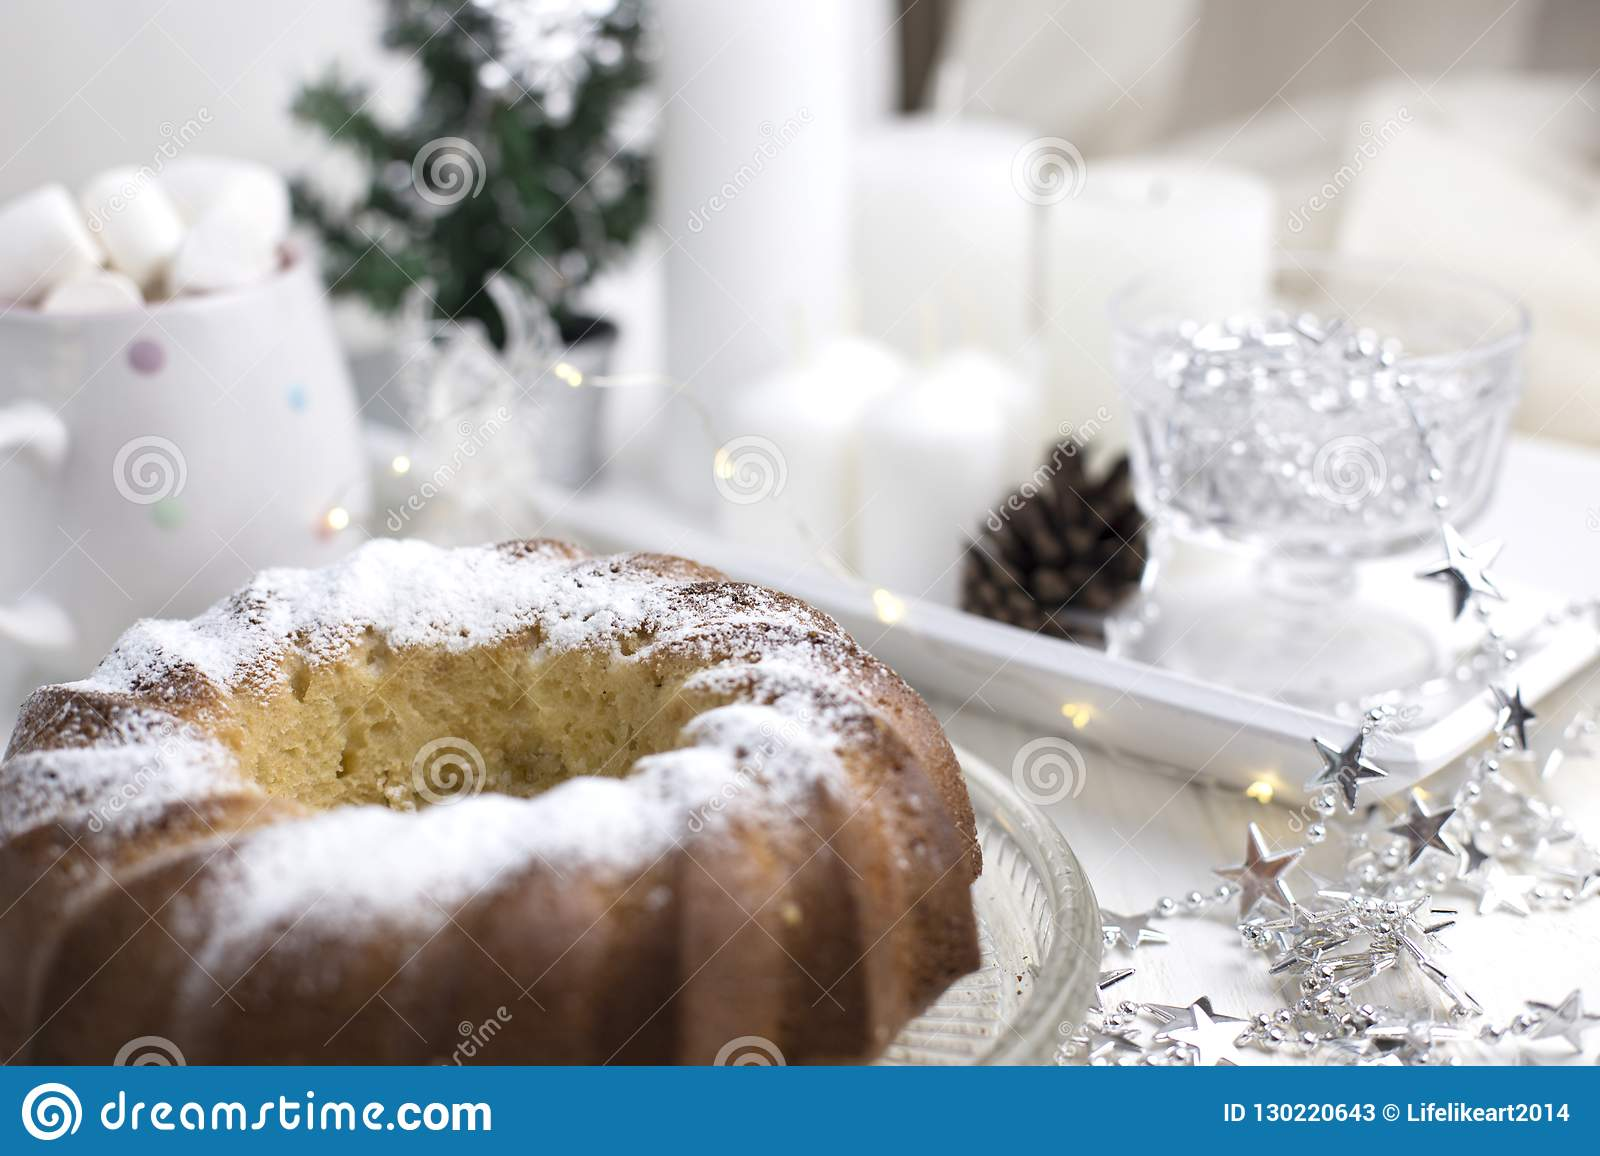 Homemade Christmas Cake With Christmas Decoration Stock Image